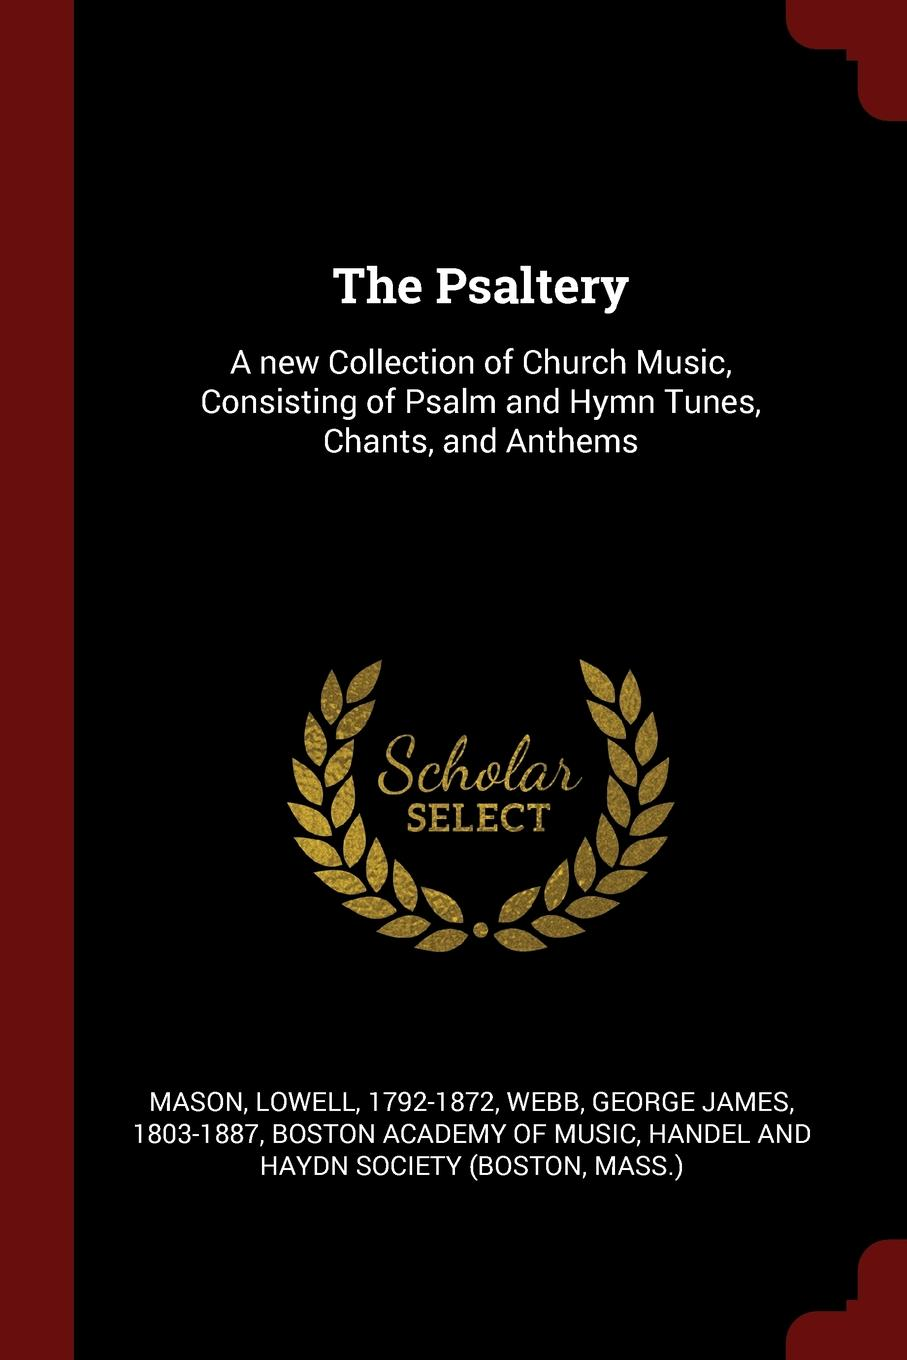 Lowell Mason, George James Webb The Psaltery. A new Collection of Church Music, Consisting of Psalm and Hymn Tunes, Chants, and Anthems lowell mason choir or union collection of church music consisting of a great variety of psalm and hymn tunes anthems etc